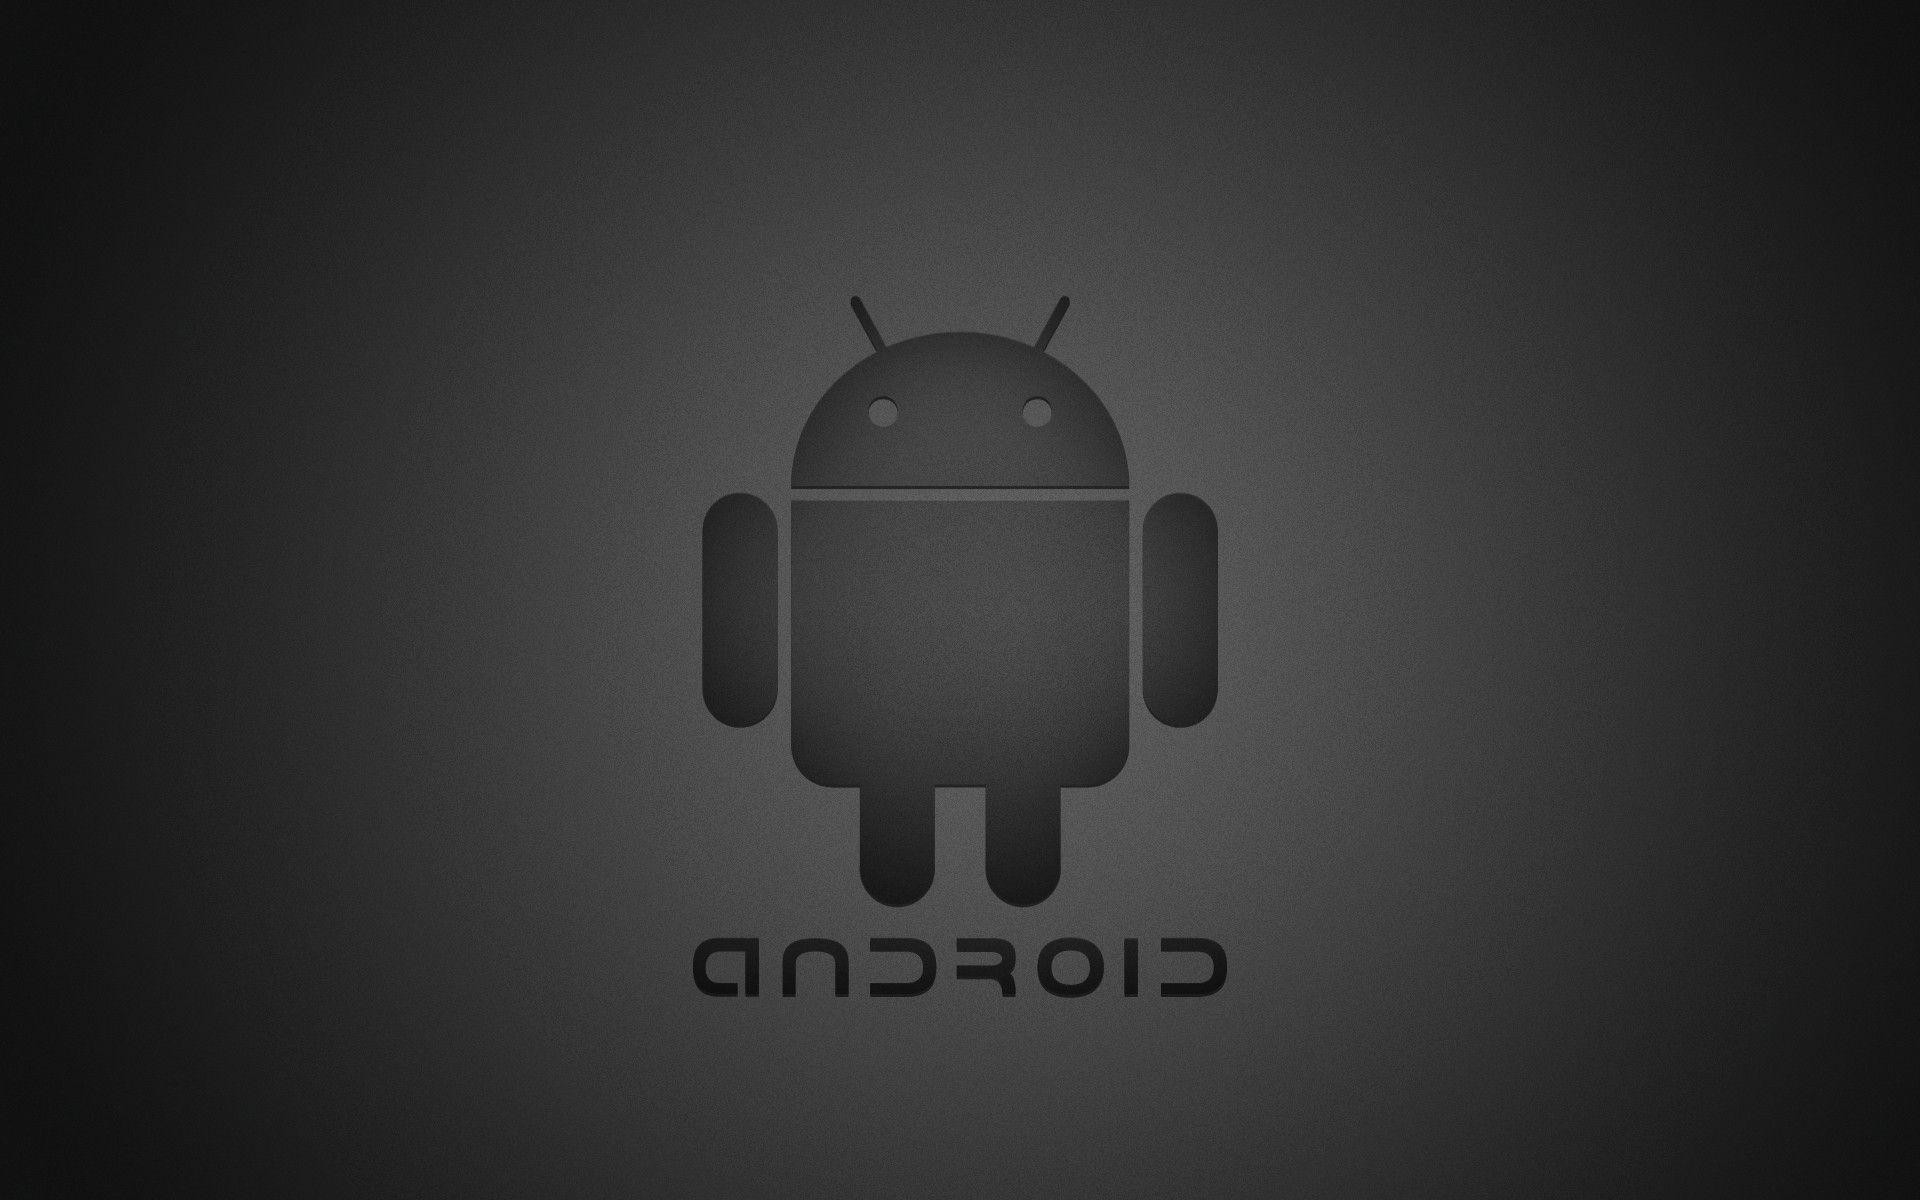 Android Dark Wallpaper 65 Images